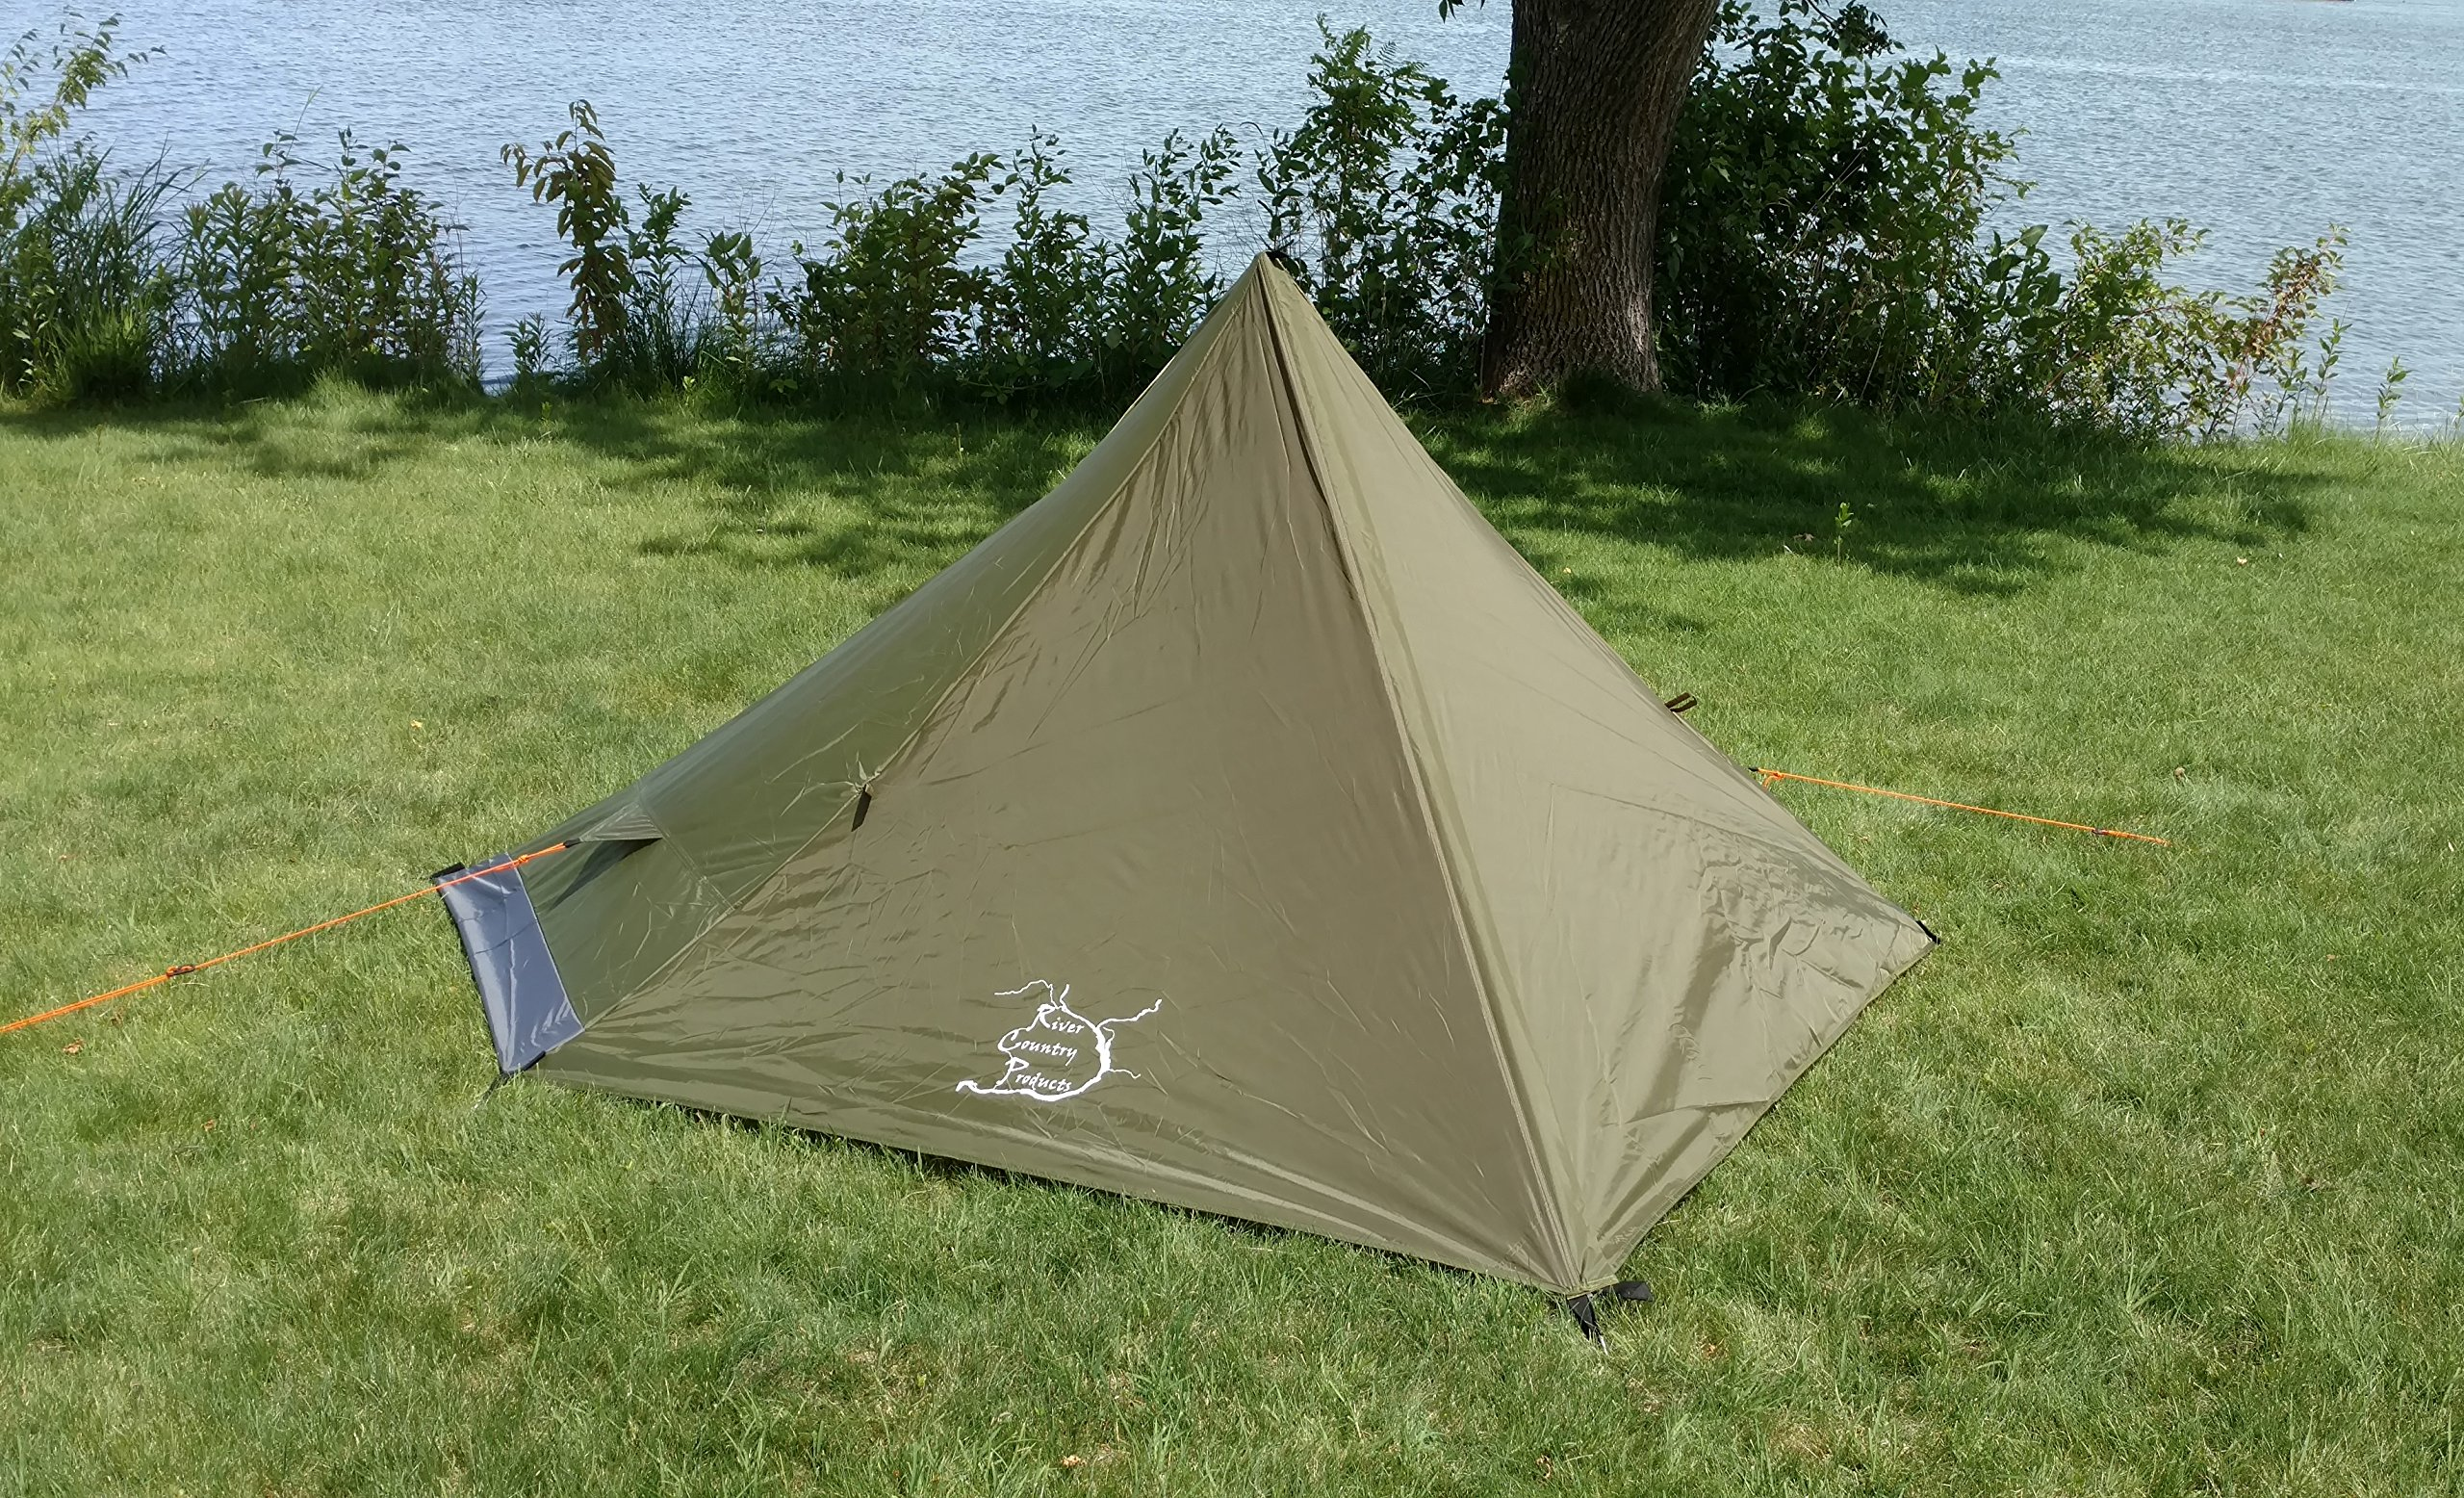 River Country Products One Person Trekking Pole Tent, Ultralight Backpacking Tent - Green by River Country Products